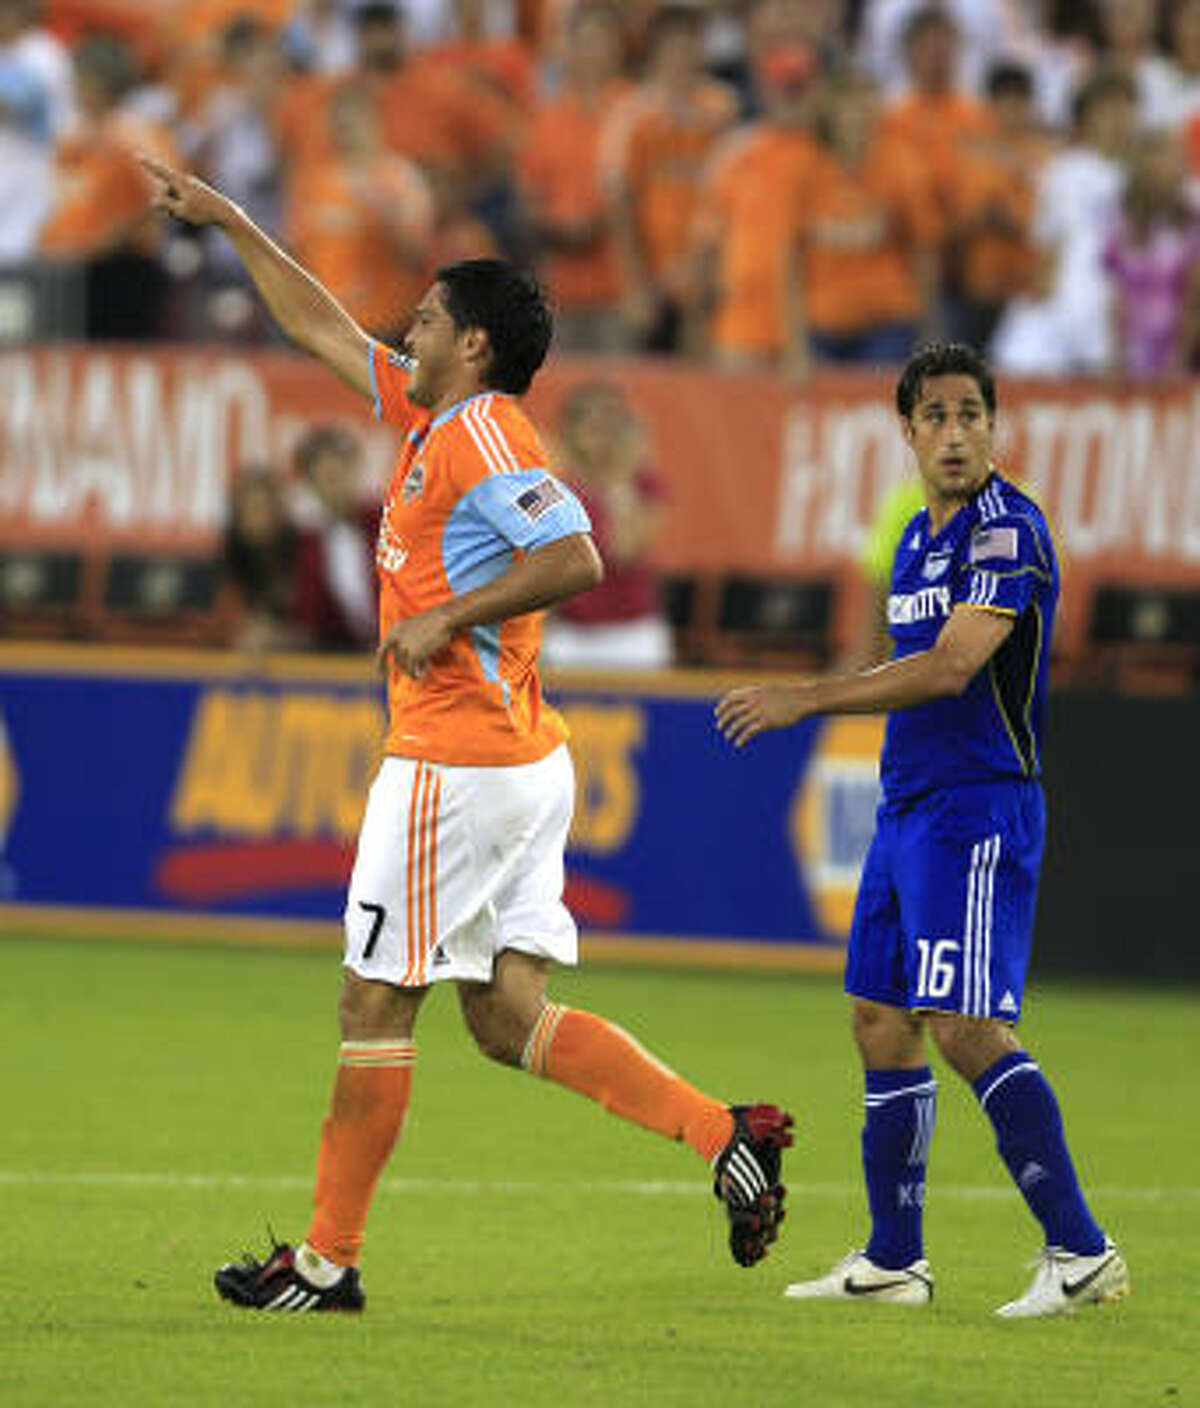 Dynamo forward Luis Landin, left, celebrates his first-half goal while running past Wizards forward Josh Wolff.